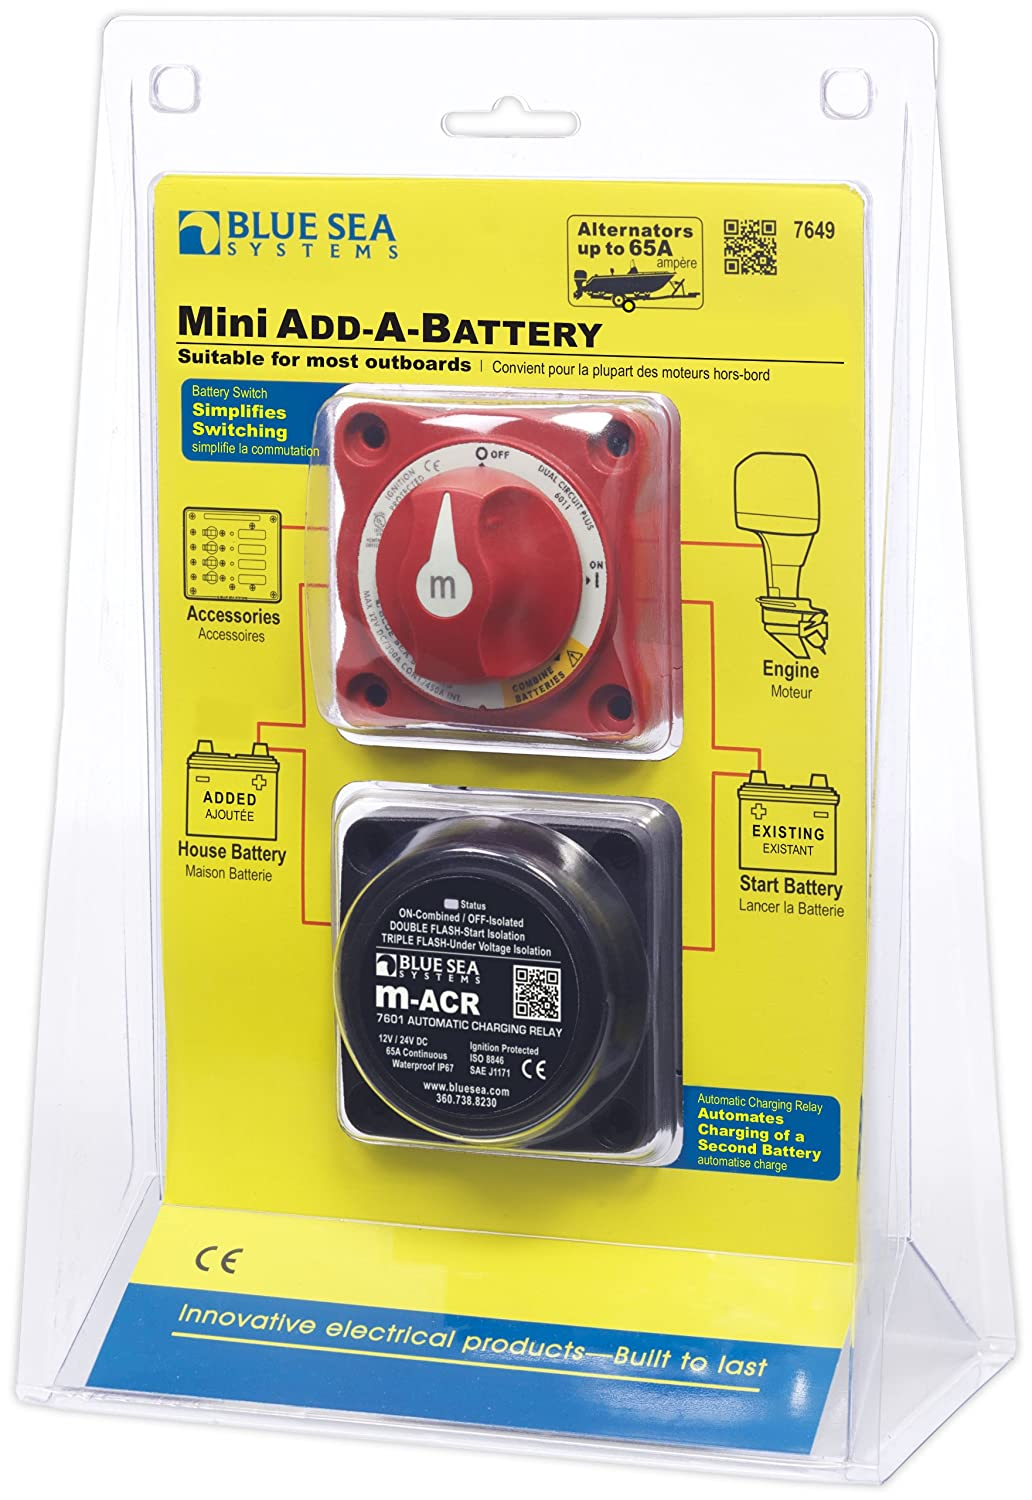 Blue Sea Systems 120A Add-A-Battery Kit 7650